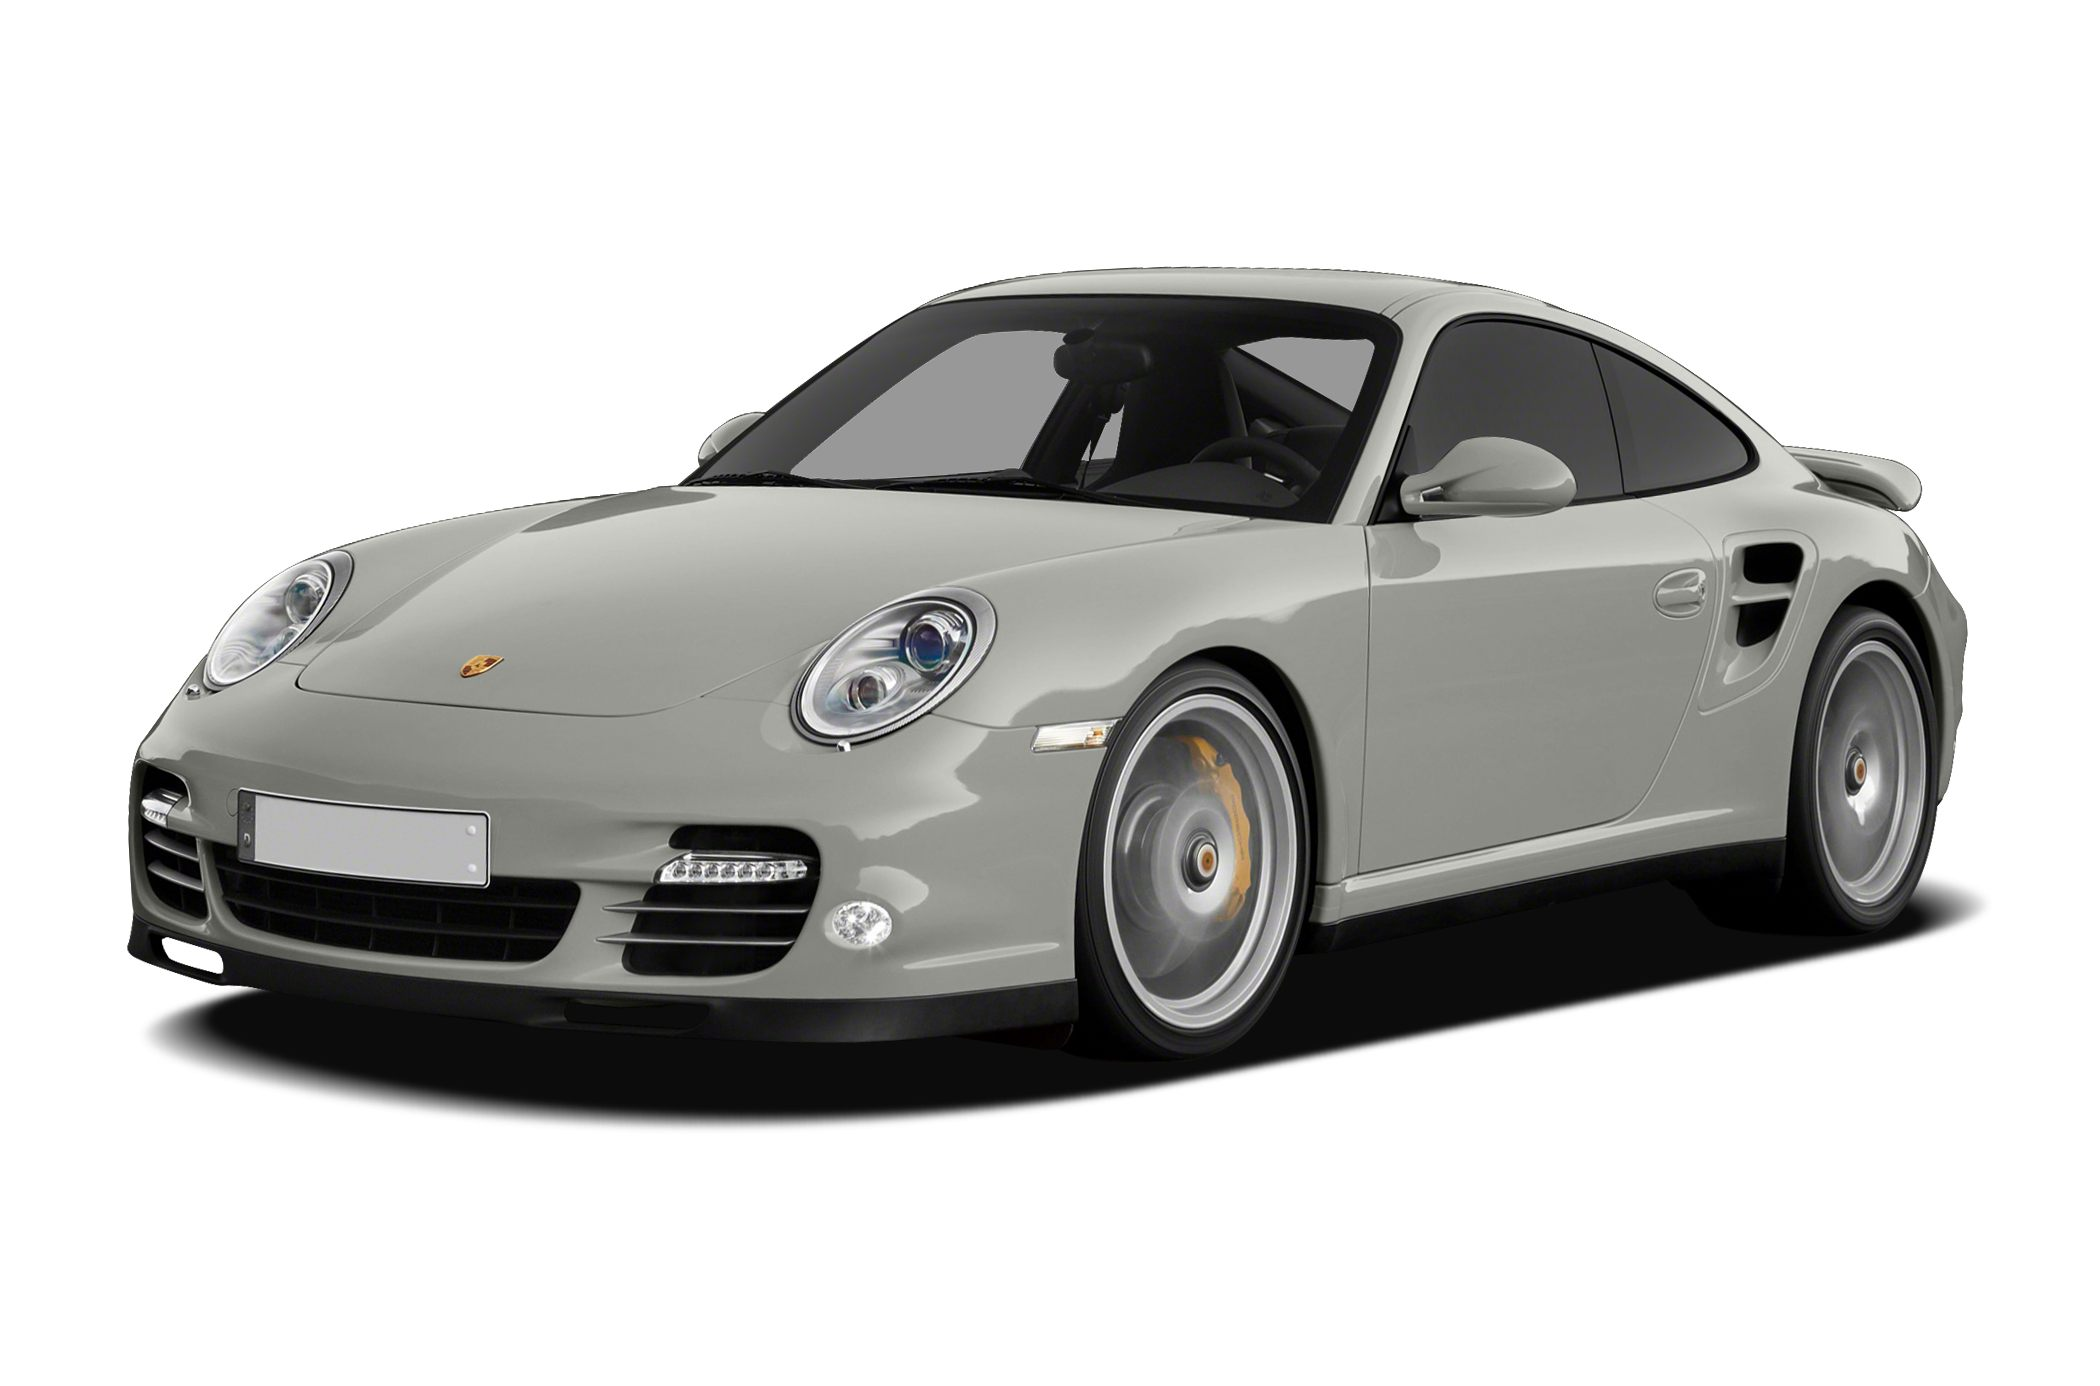 Porsche celebrates 50 years of 911s with limited edition model